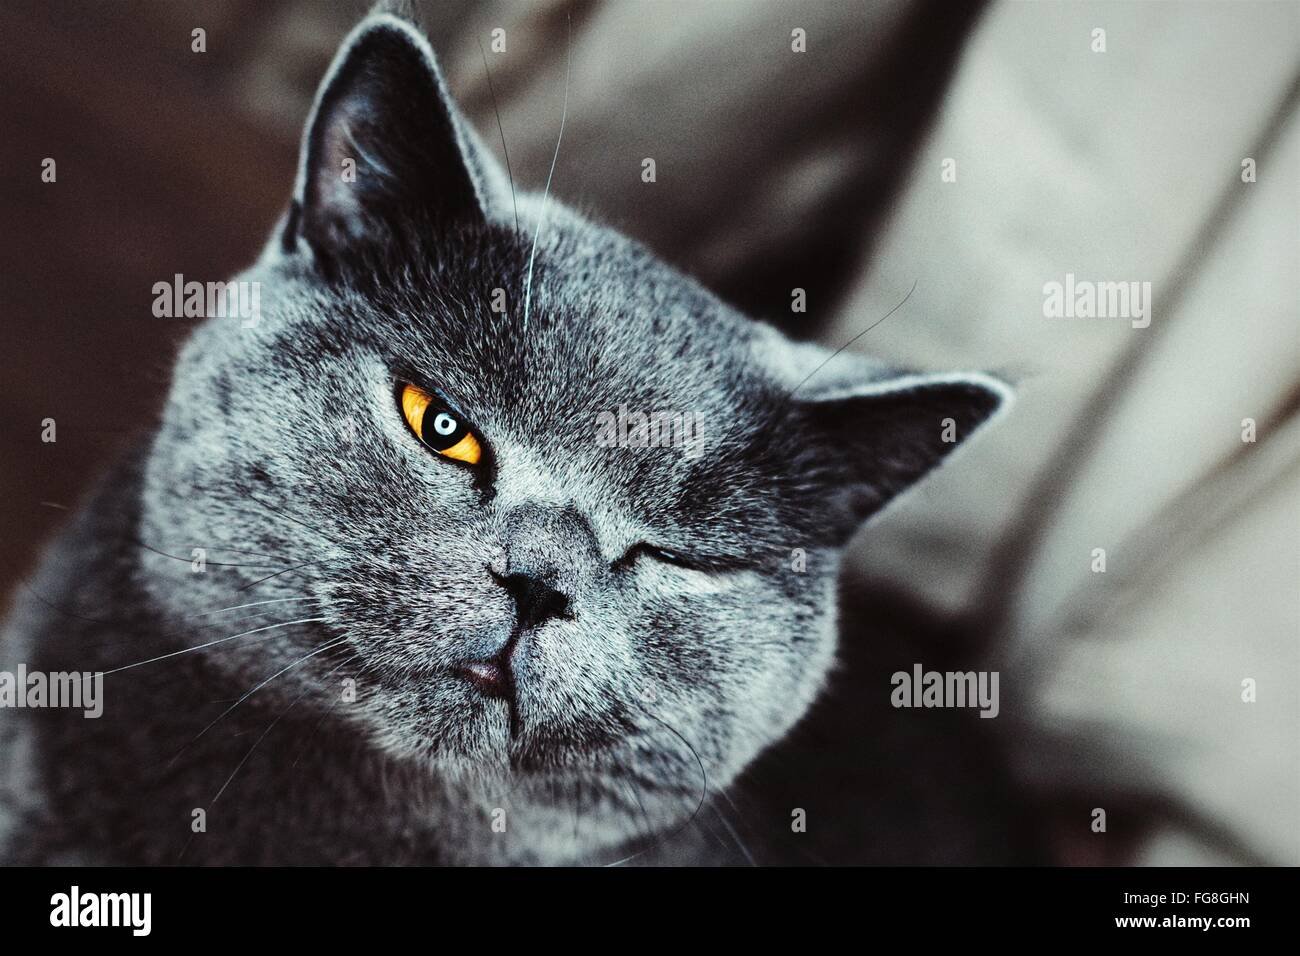 Portrait Close-Up Of Chartreux Cat Winking - Stock Image